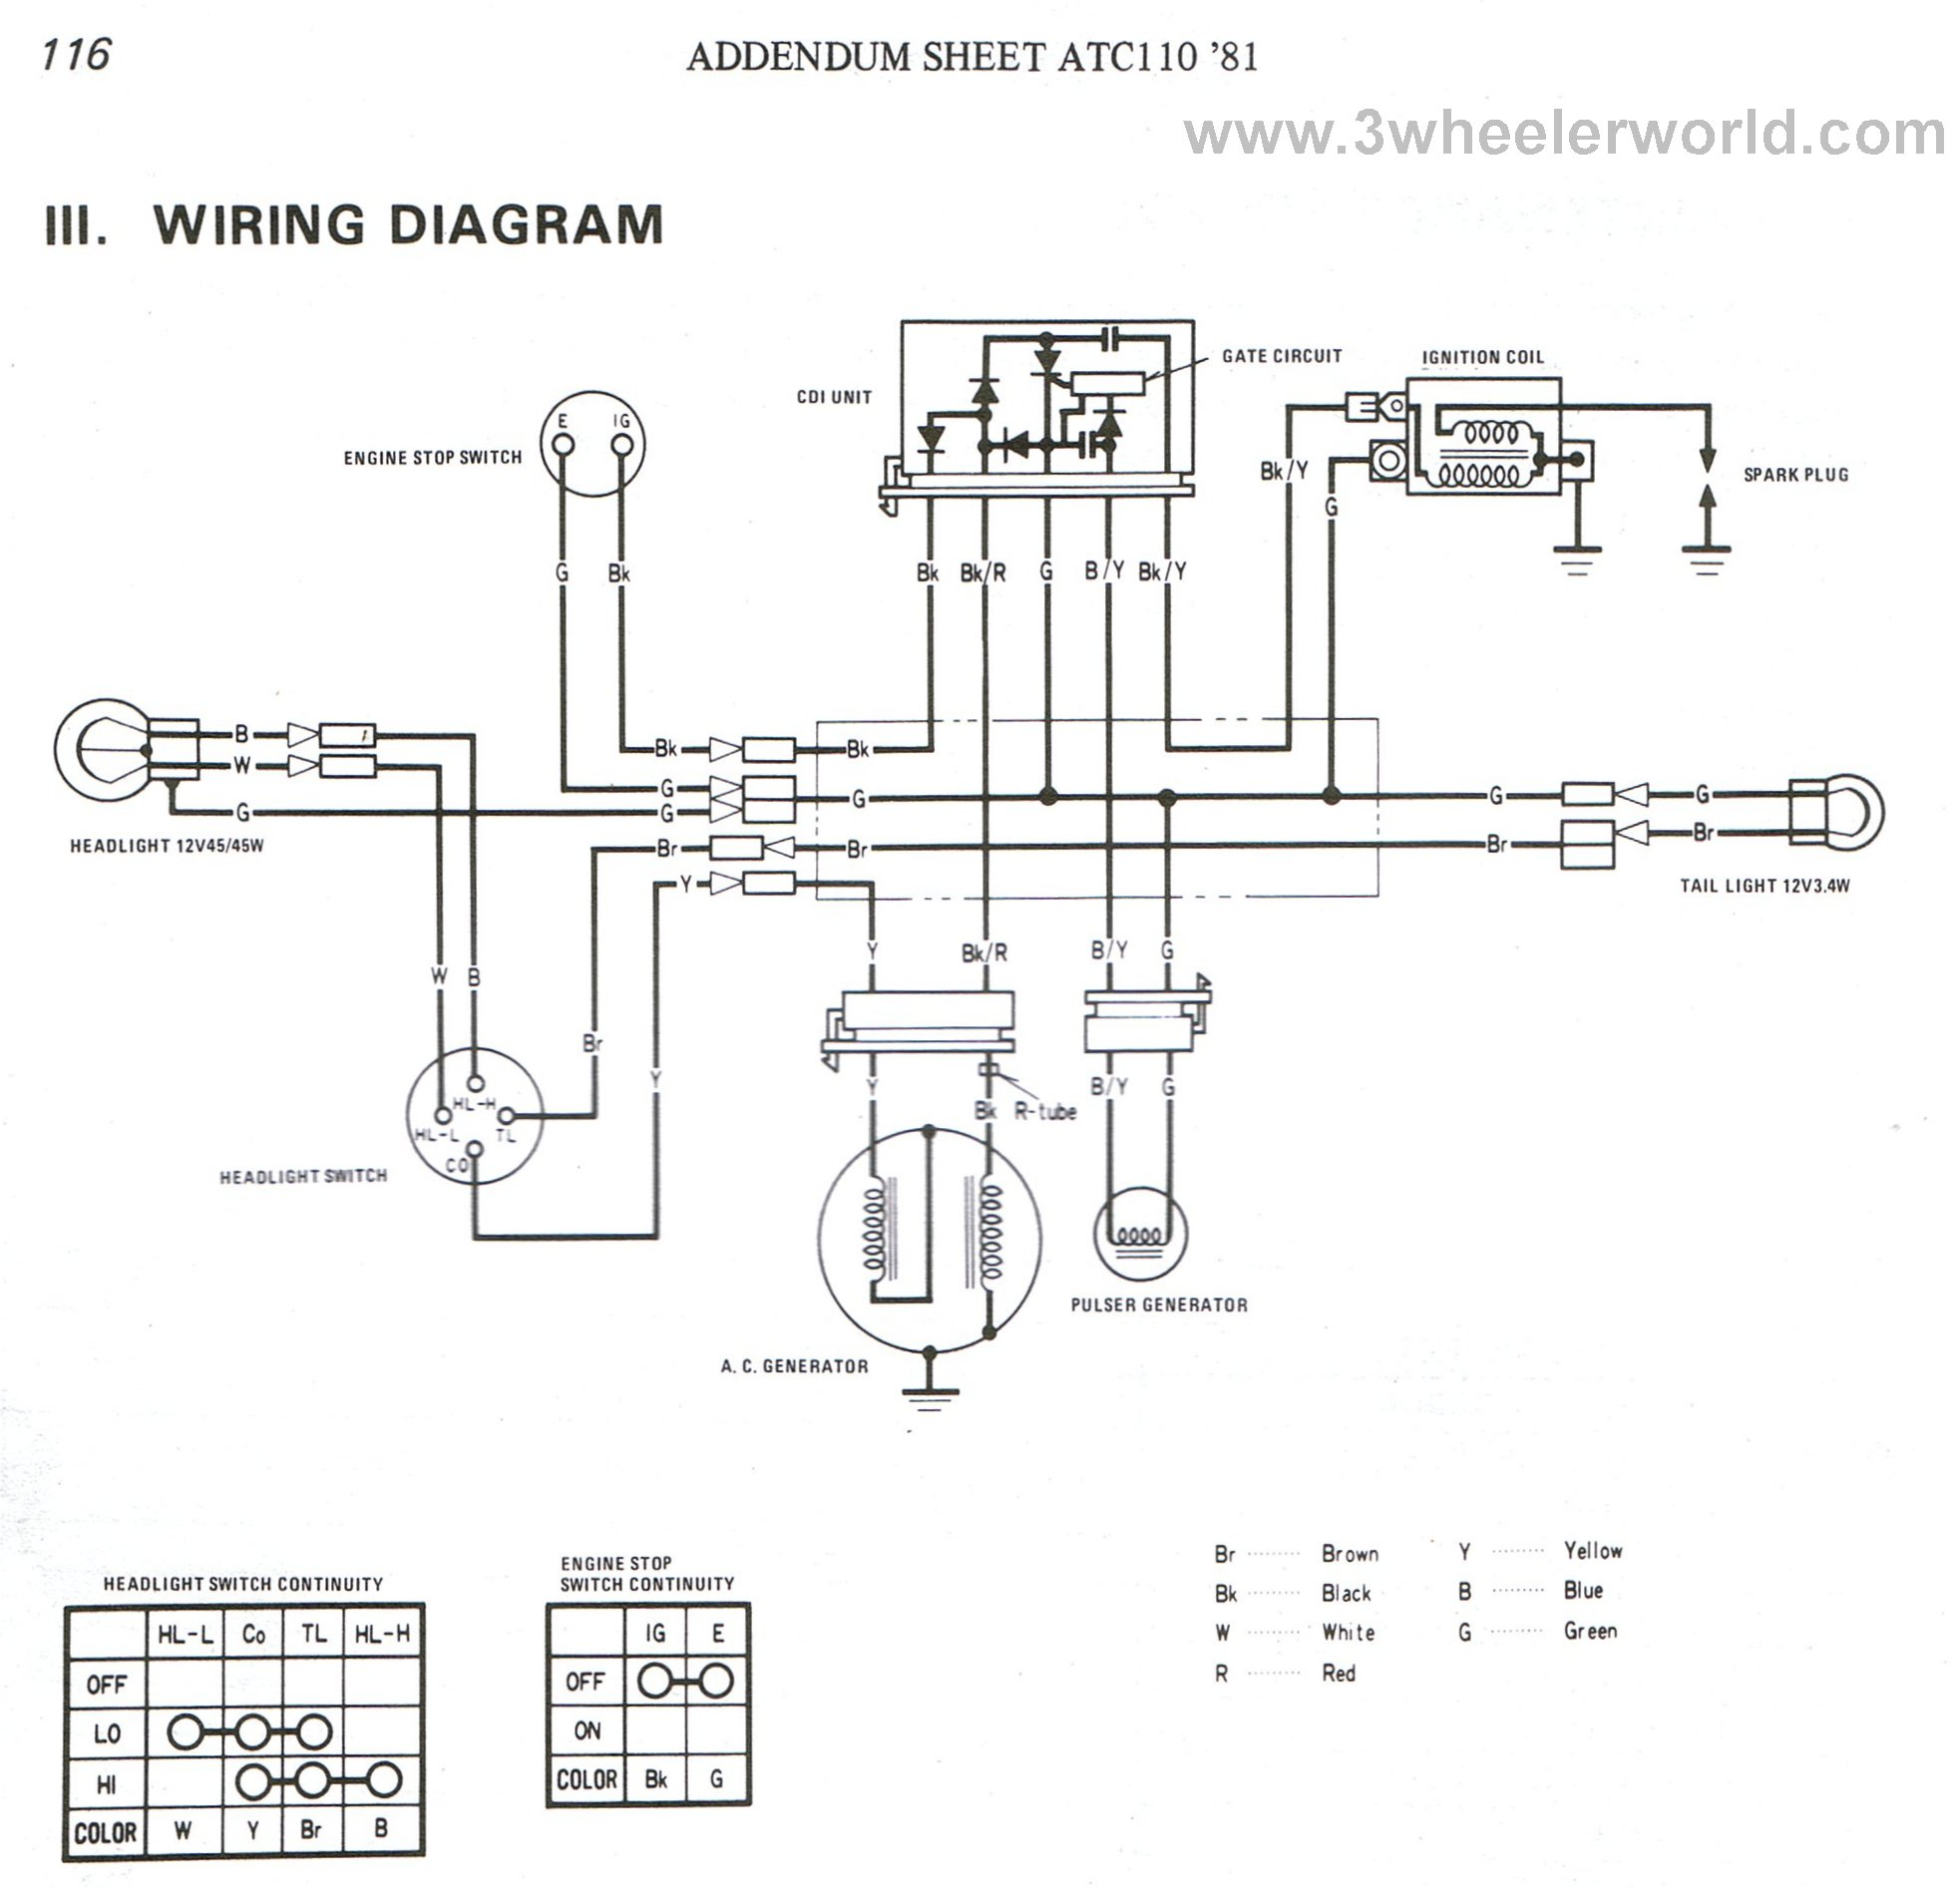 Yamaha 250 4 Wheeler Engine Diagram Opinions About Wiring Timberwolf For 1987 Honda Odicis 2 Stroke Baer Atv Tracks